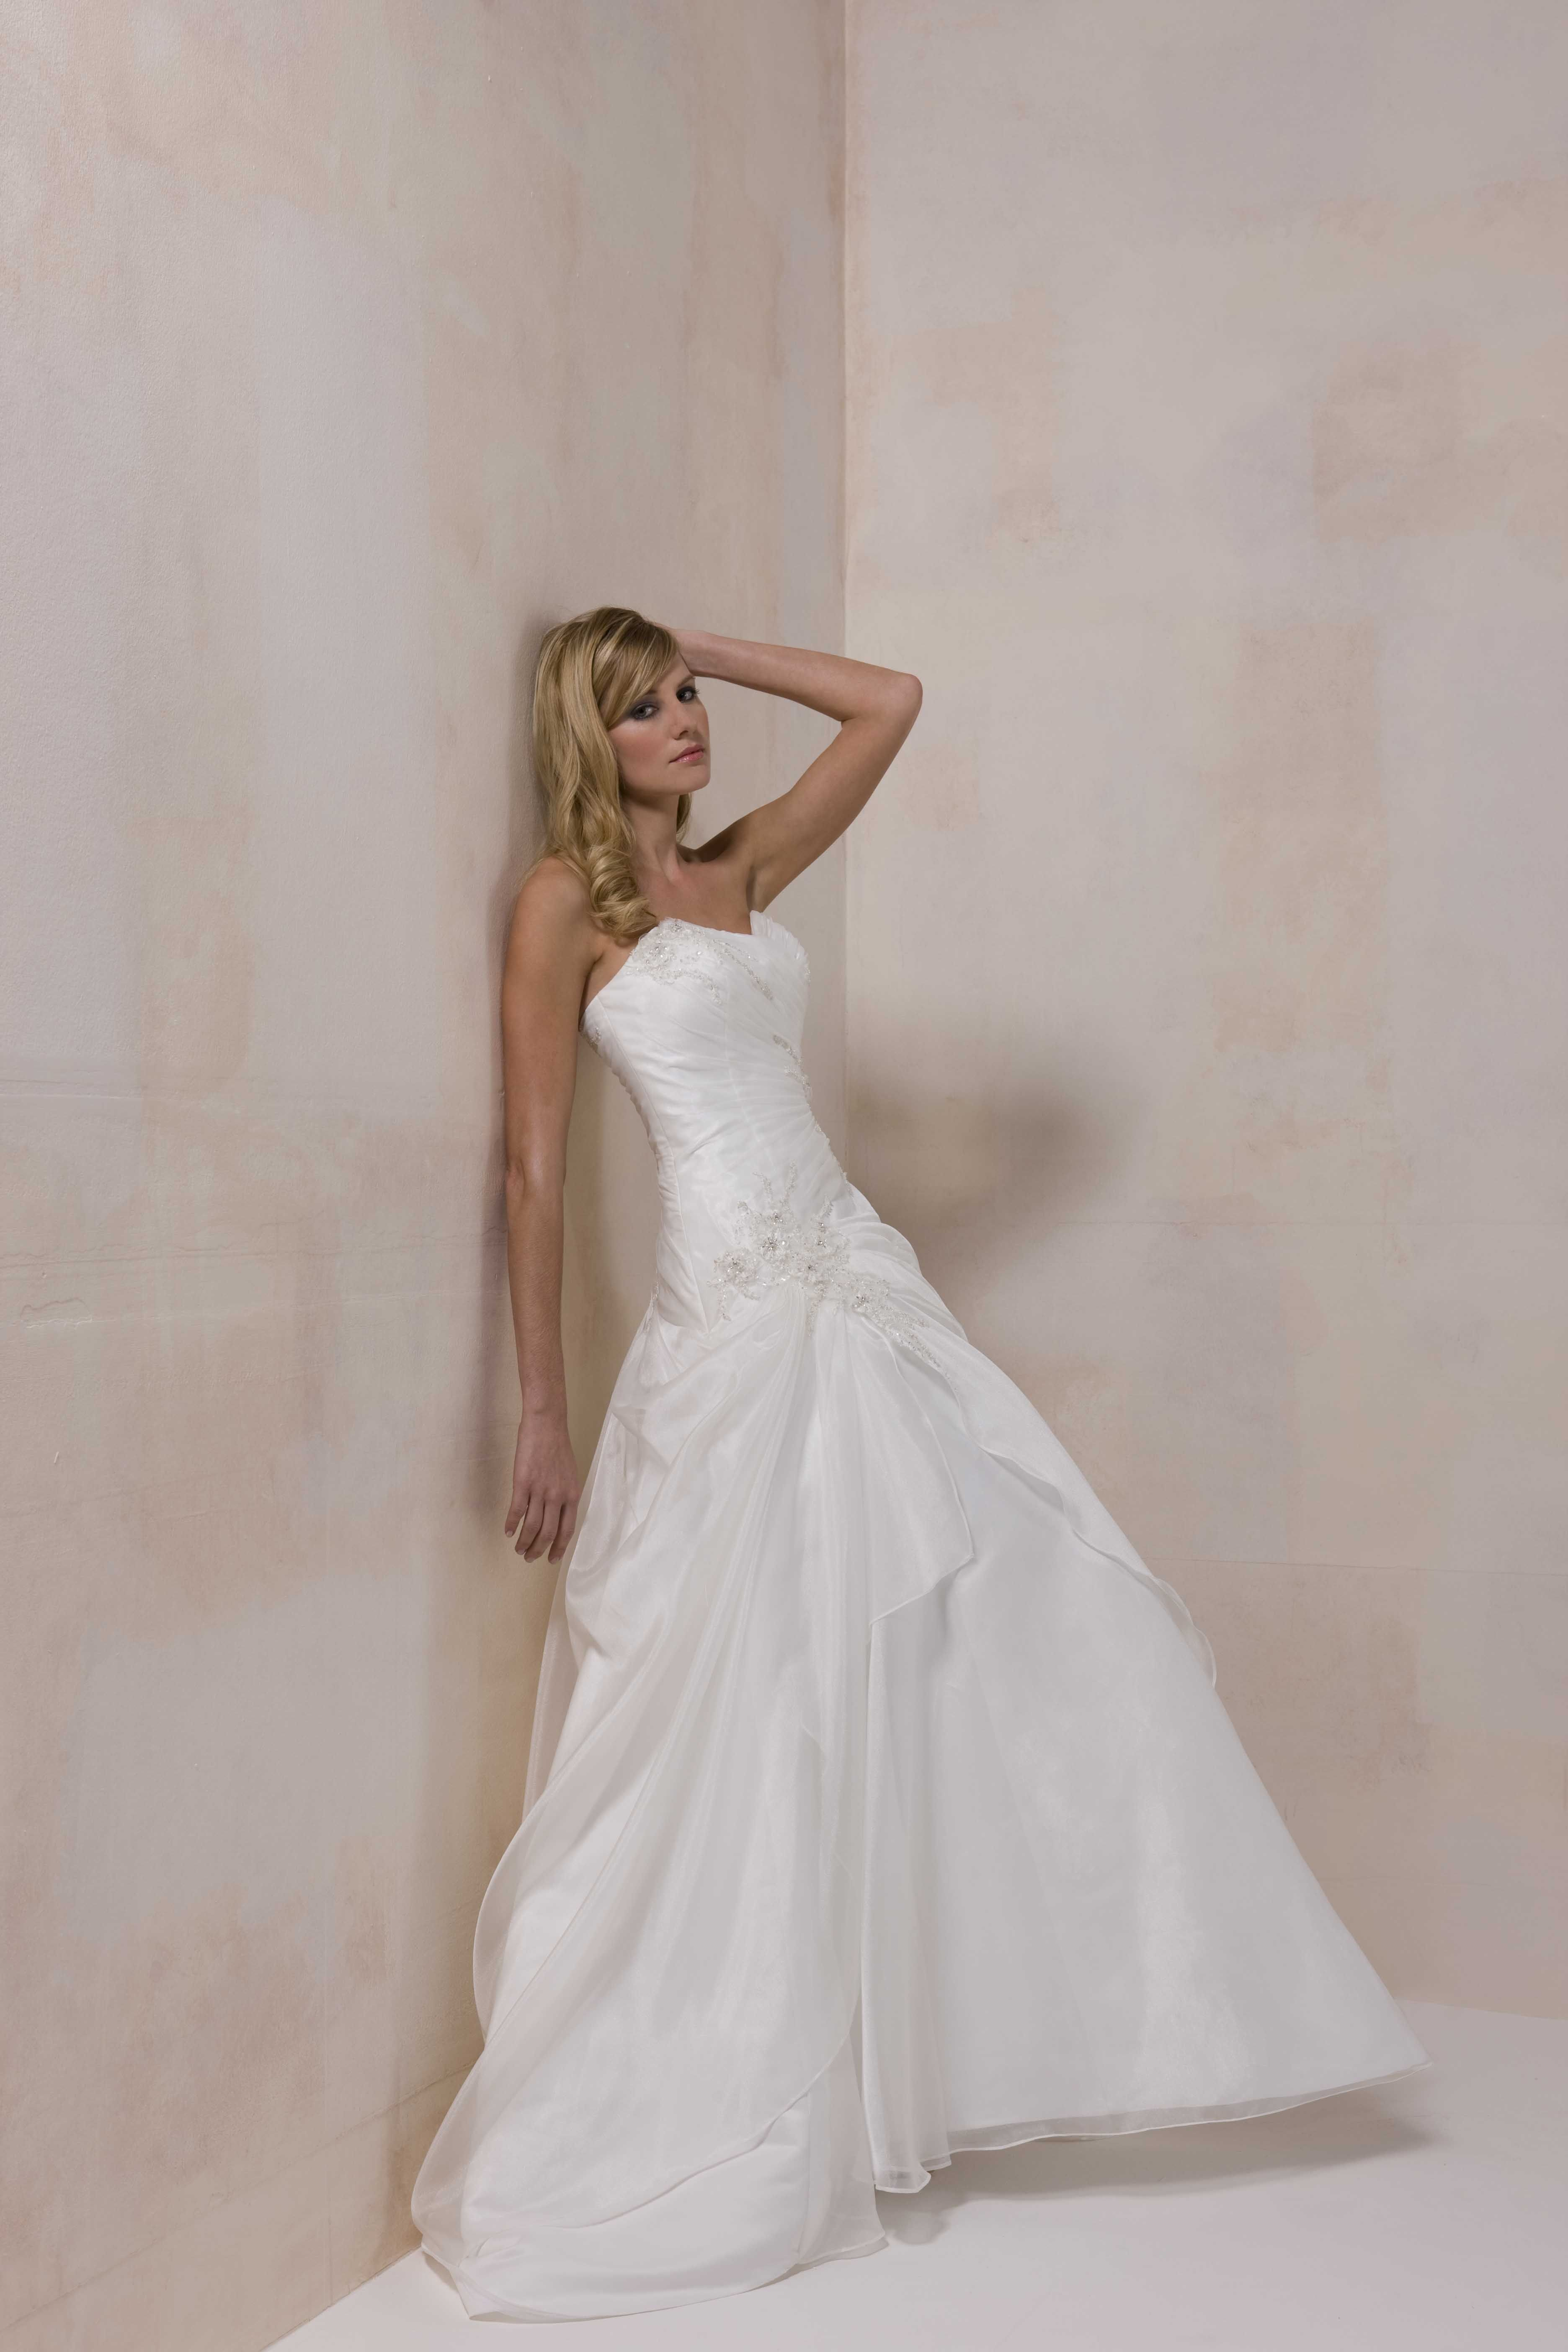 Dorothea by Romantica Bridal as featured on the Romantica of Devon ...